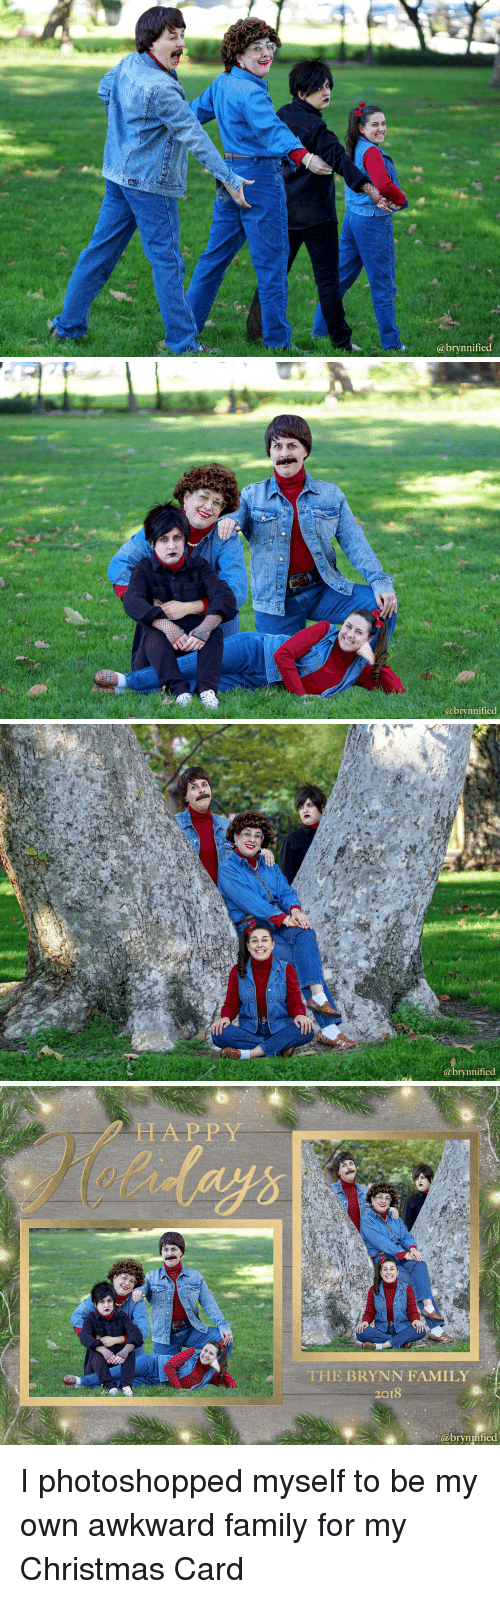 christmas-card: @brynnified   brynnified   @brynnified   HAPPY  THE BRYNN FAMILY  2018  abrynified I photoshopped myself to be my own awkward family for my Christmas Card